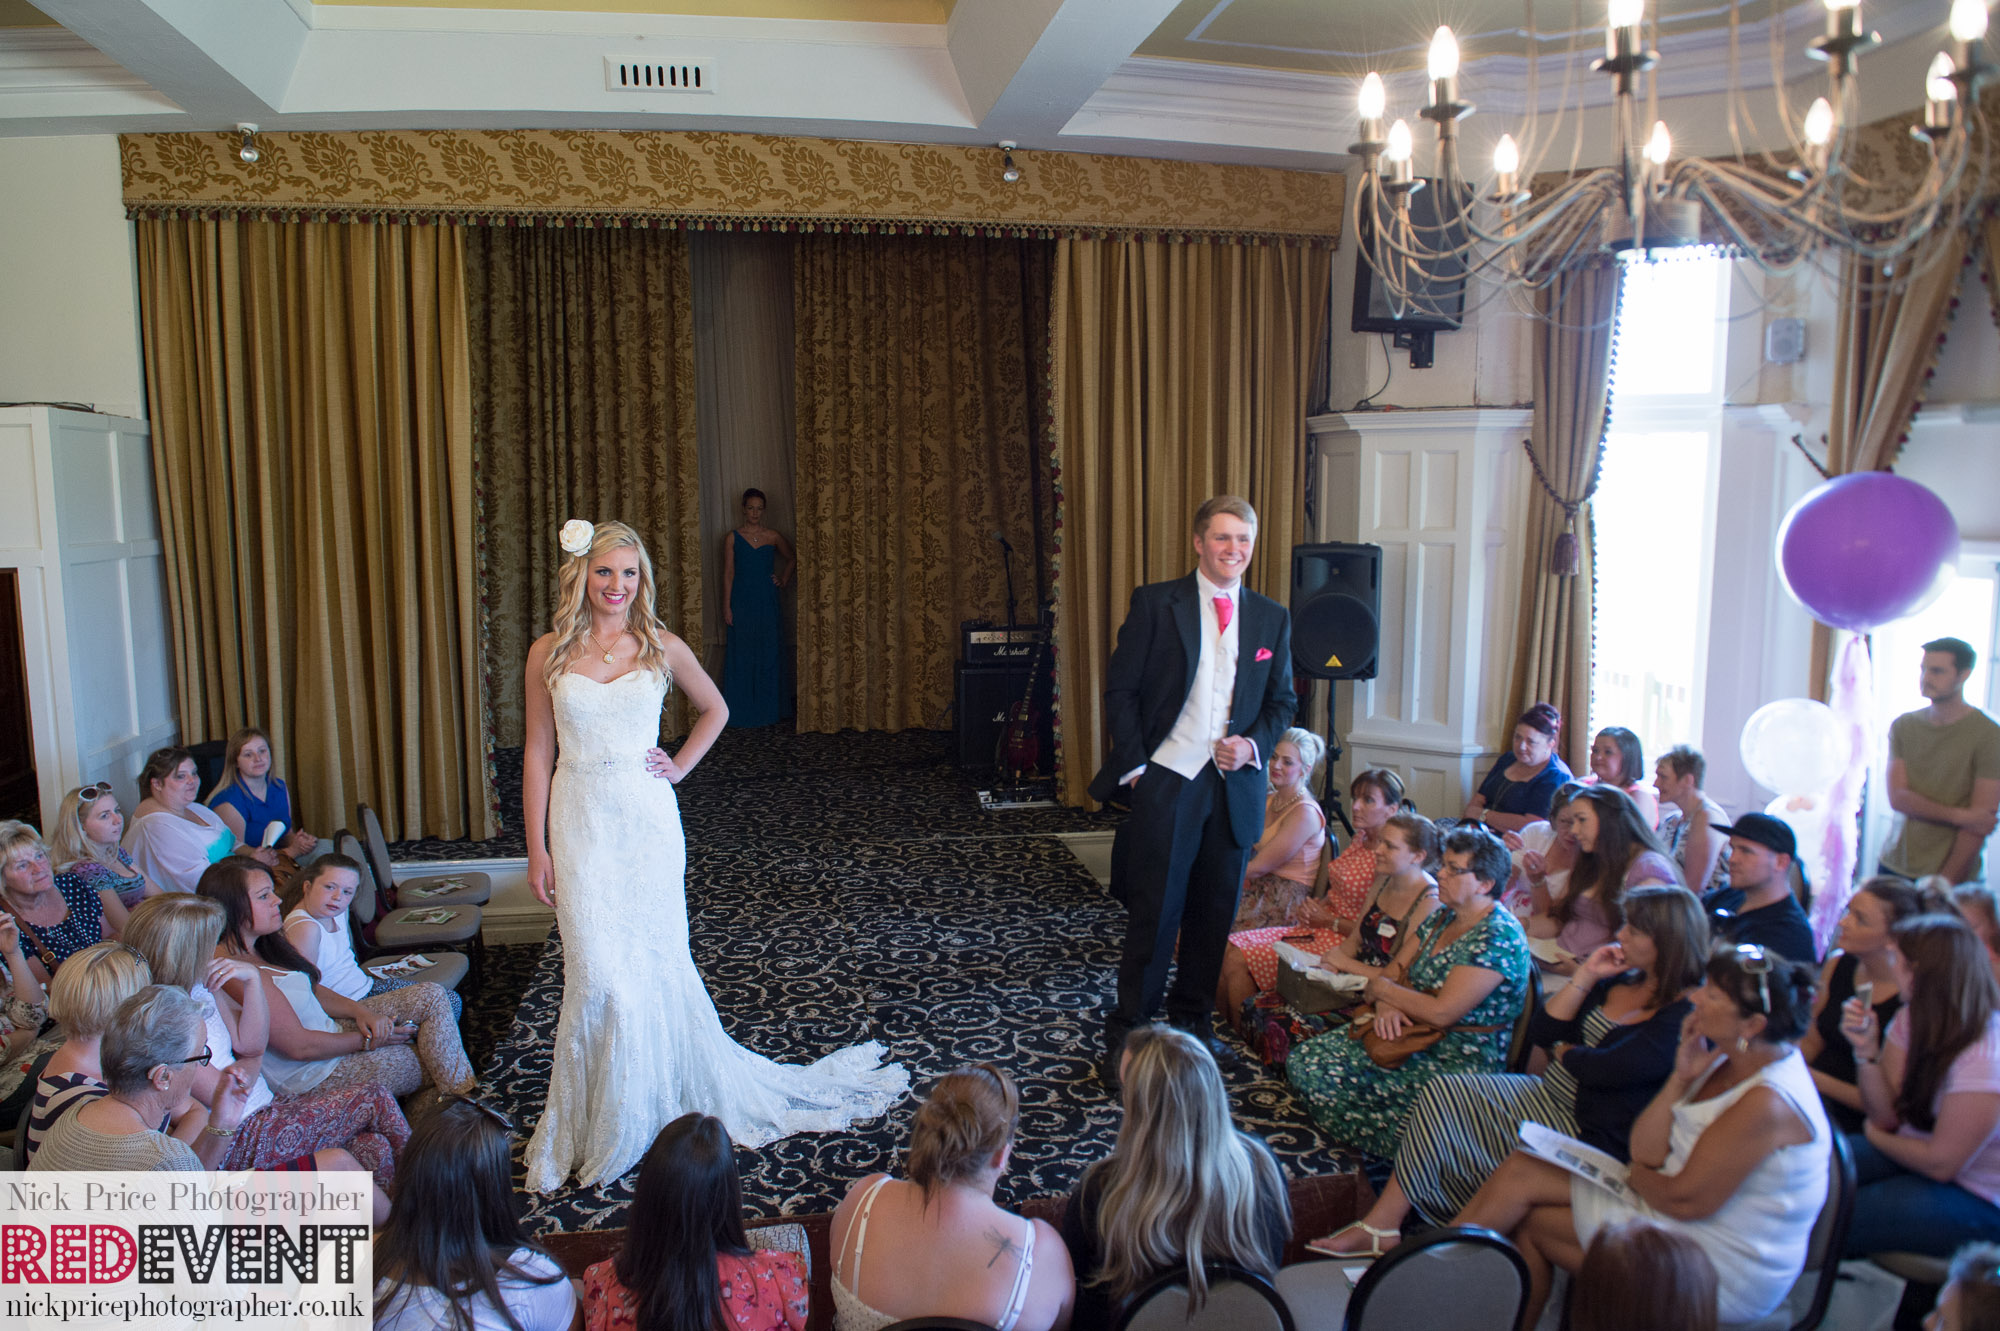 FB Leasowe Castle Wedding Fayre, Wirral. Sunday 22nd June Catwalk show RED EVENT-20